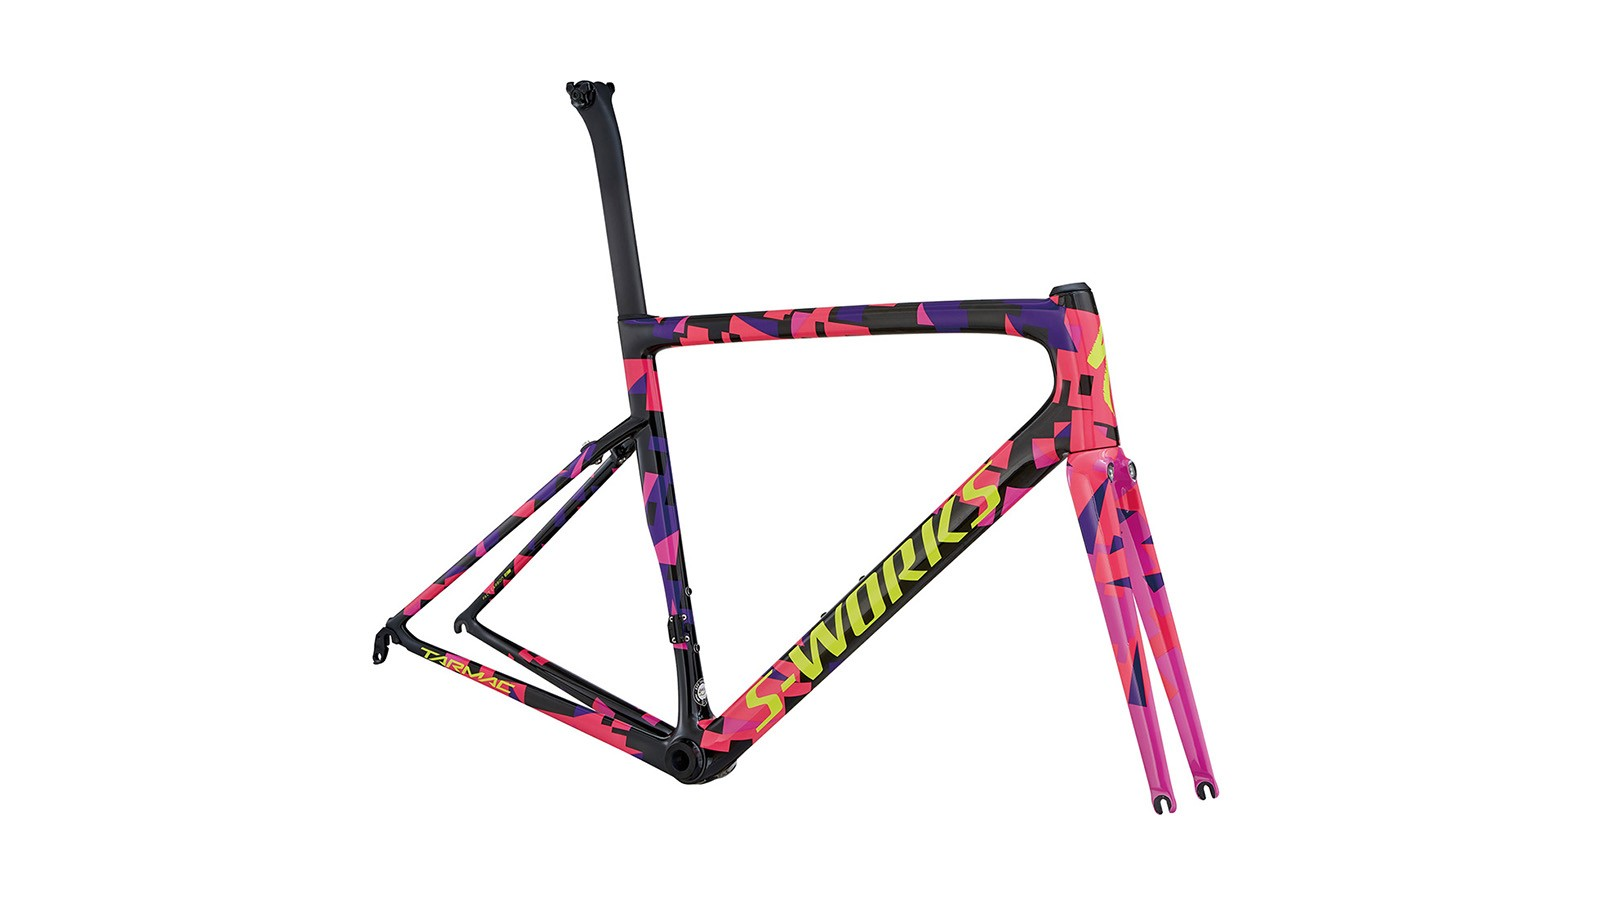 The S-Works Superstar limited edition Peter Sagan frameset